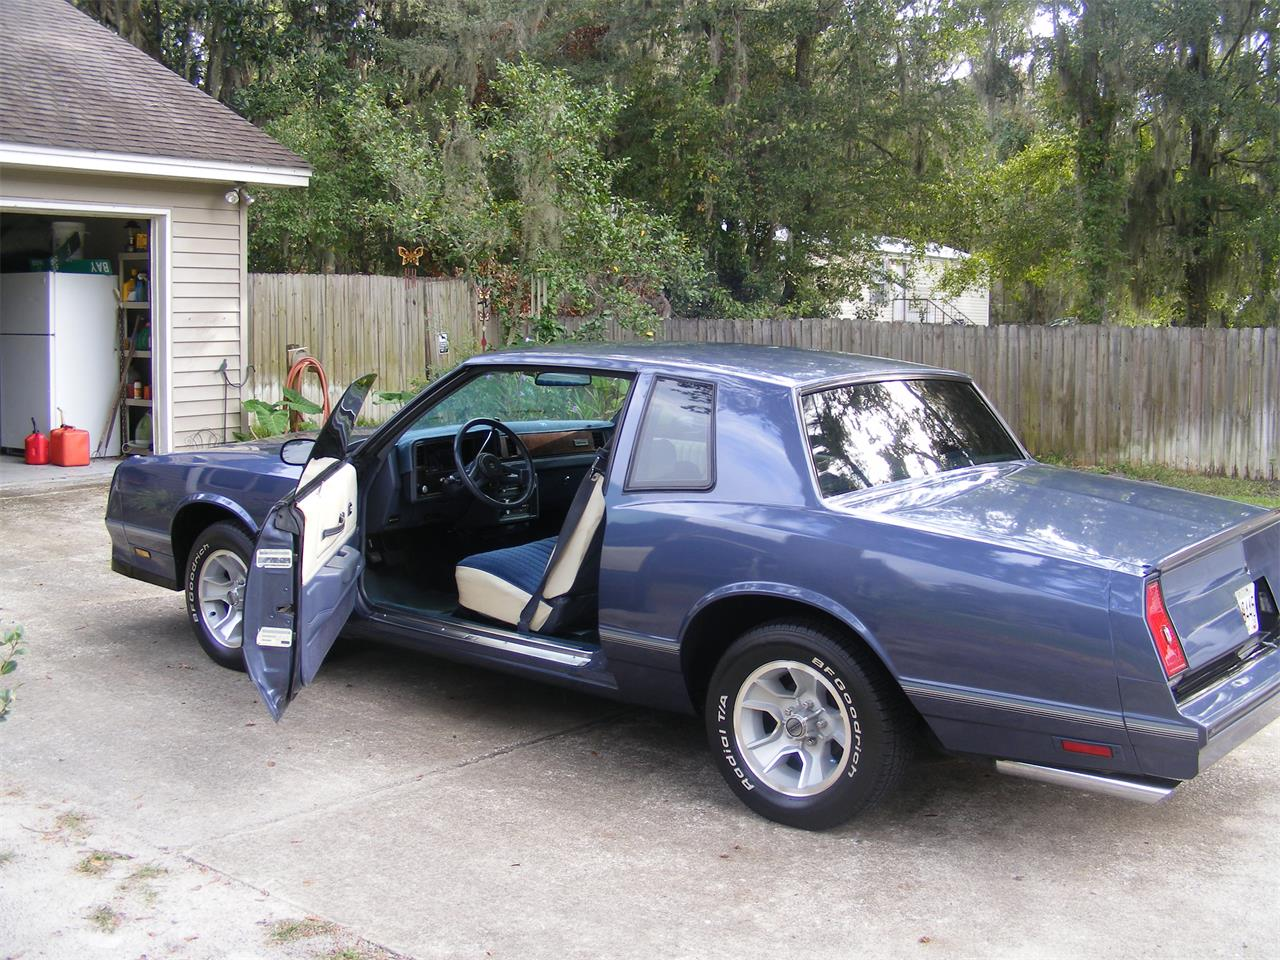 1984 chevrolet monte carlo ss for sale classiccars com cc 1034883 1984 chevrolet monte carlo ss for sale